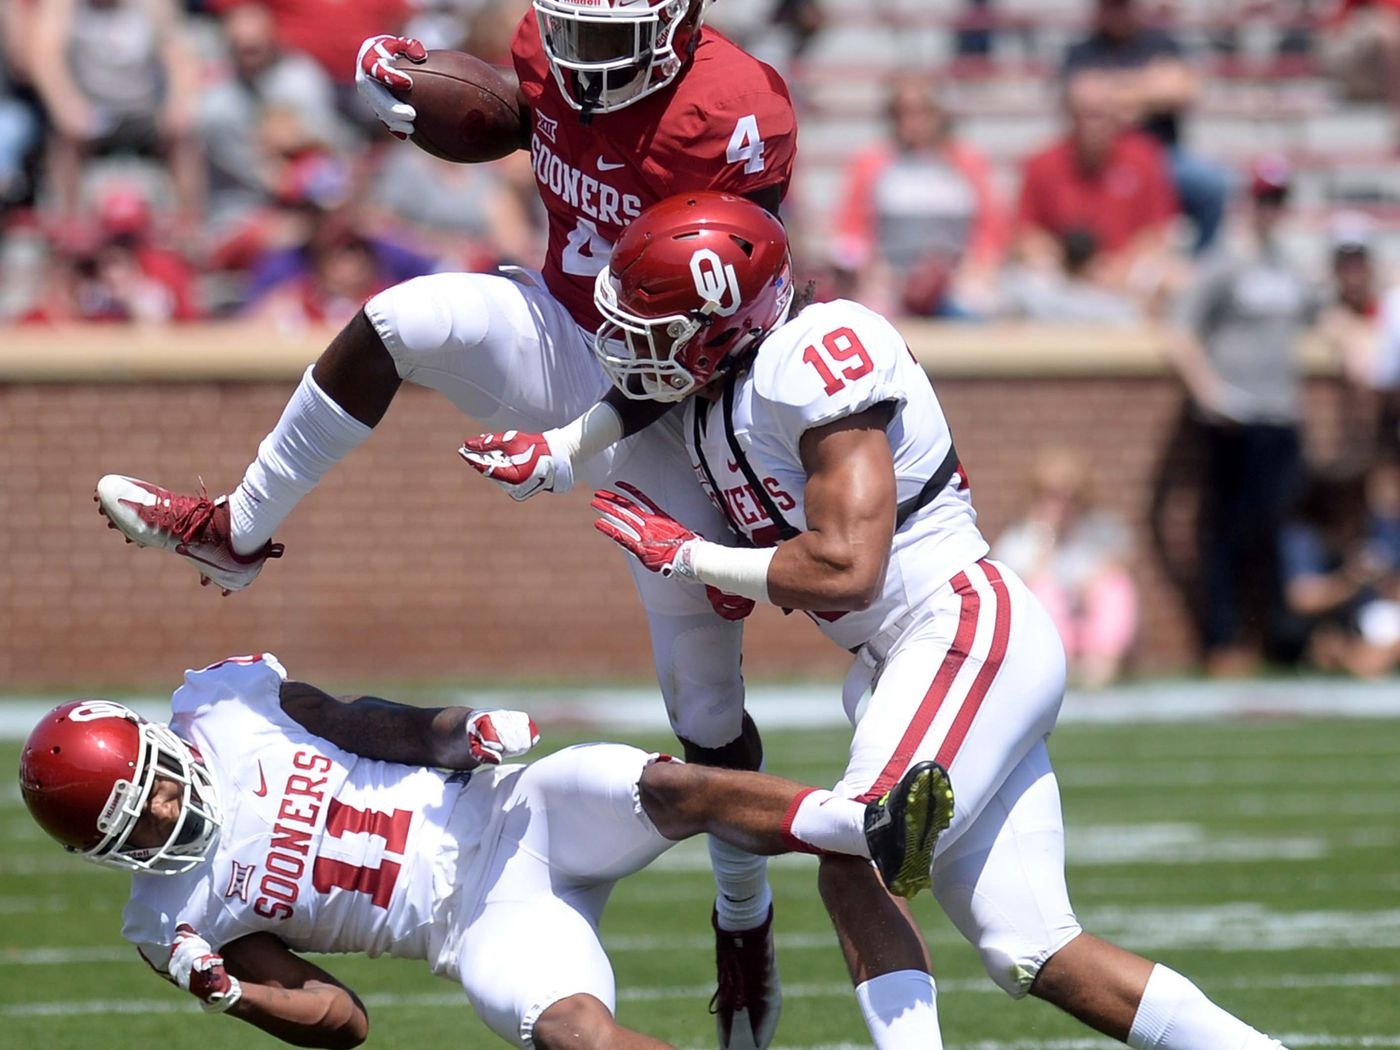 b01f20c2e009 Oklahoma Football Spring Game 2018  How to Watch (Channel